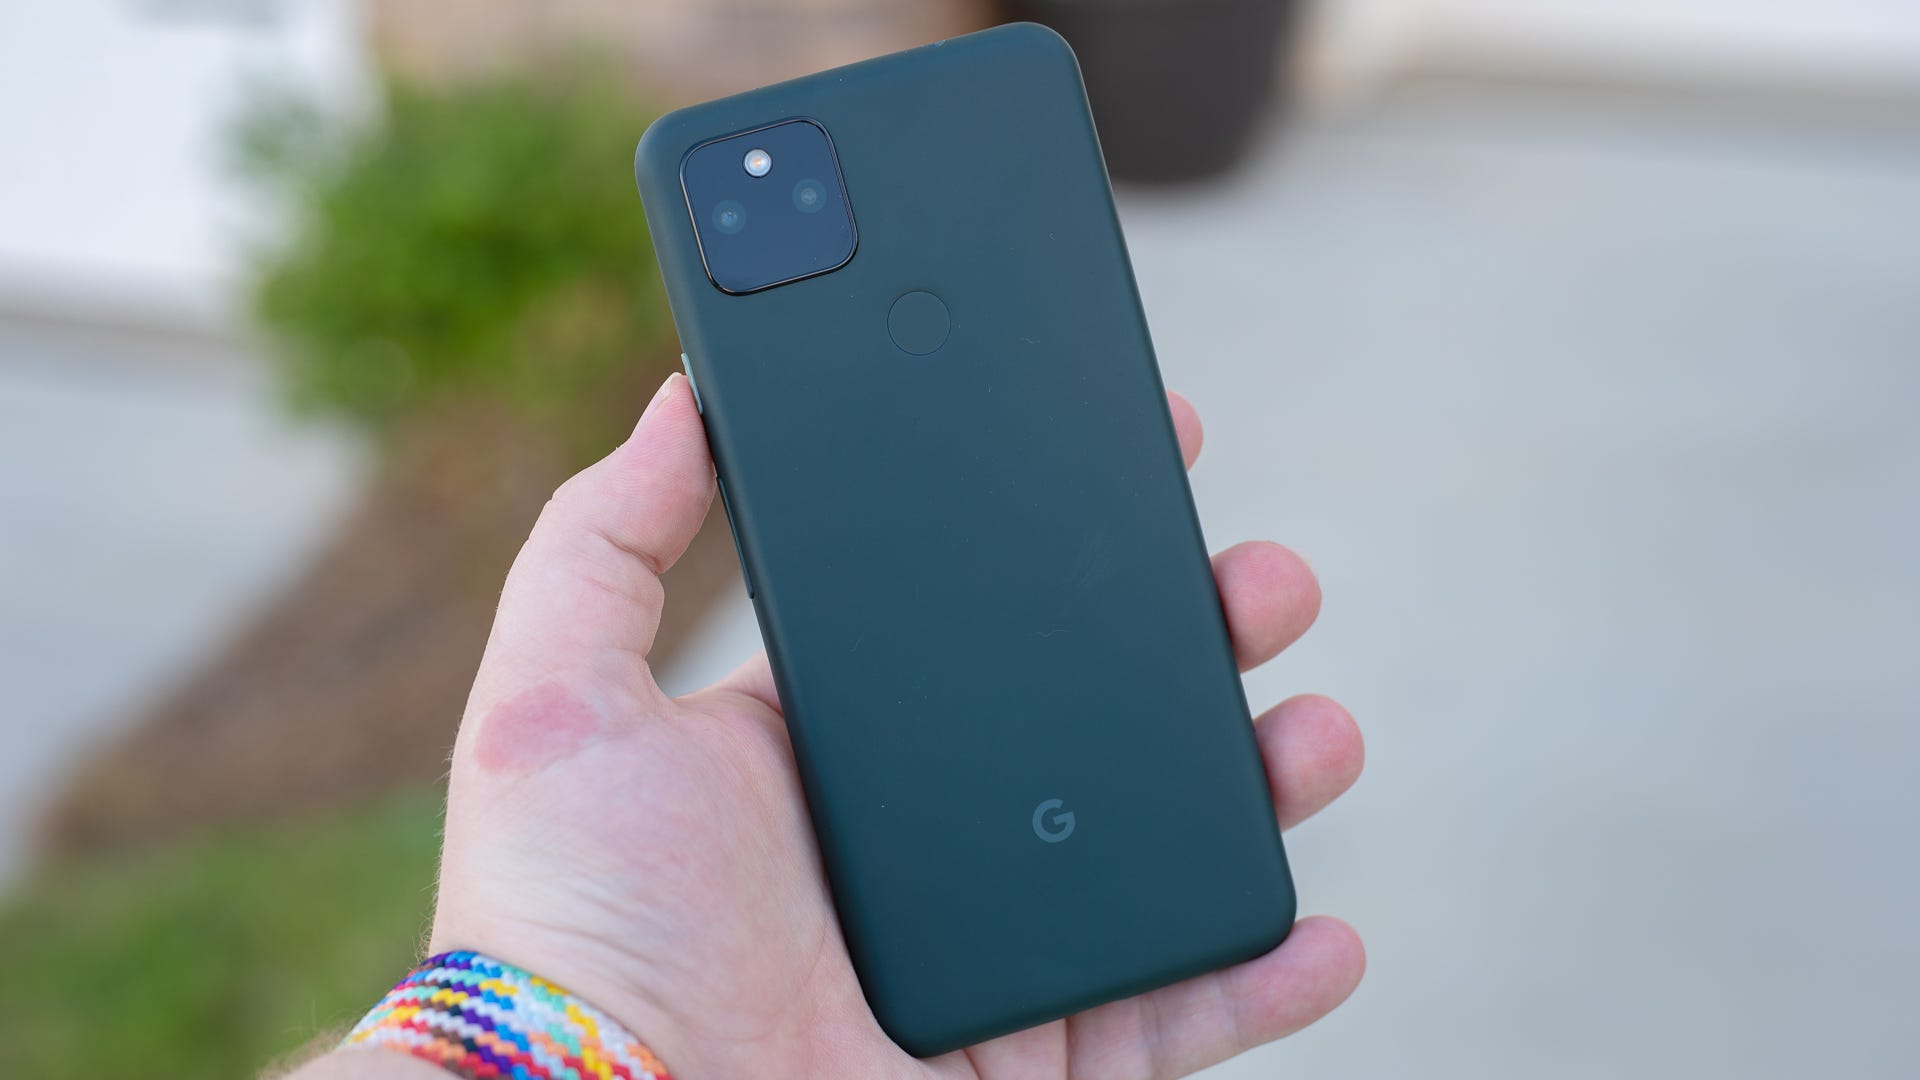 The back of the Pixel 5a